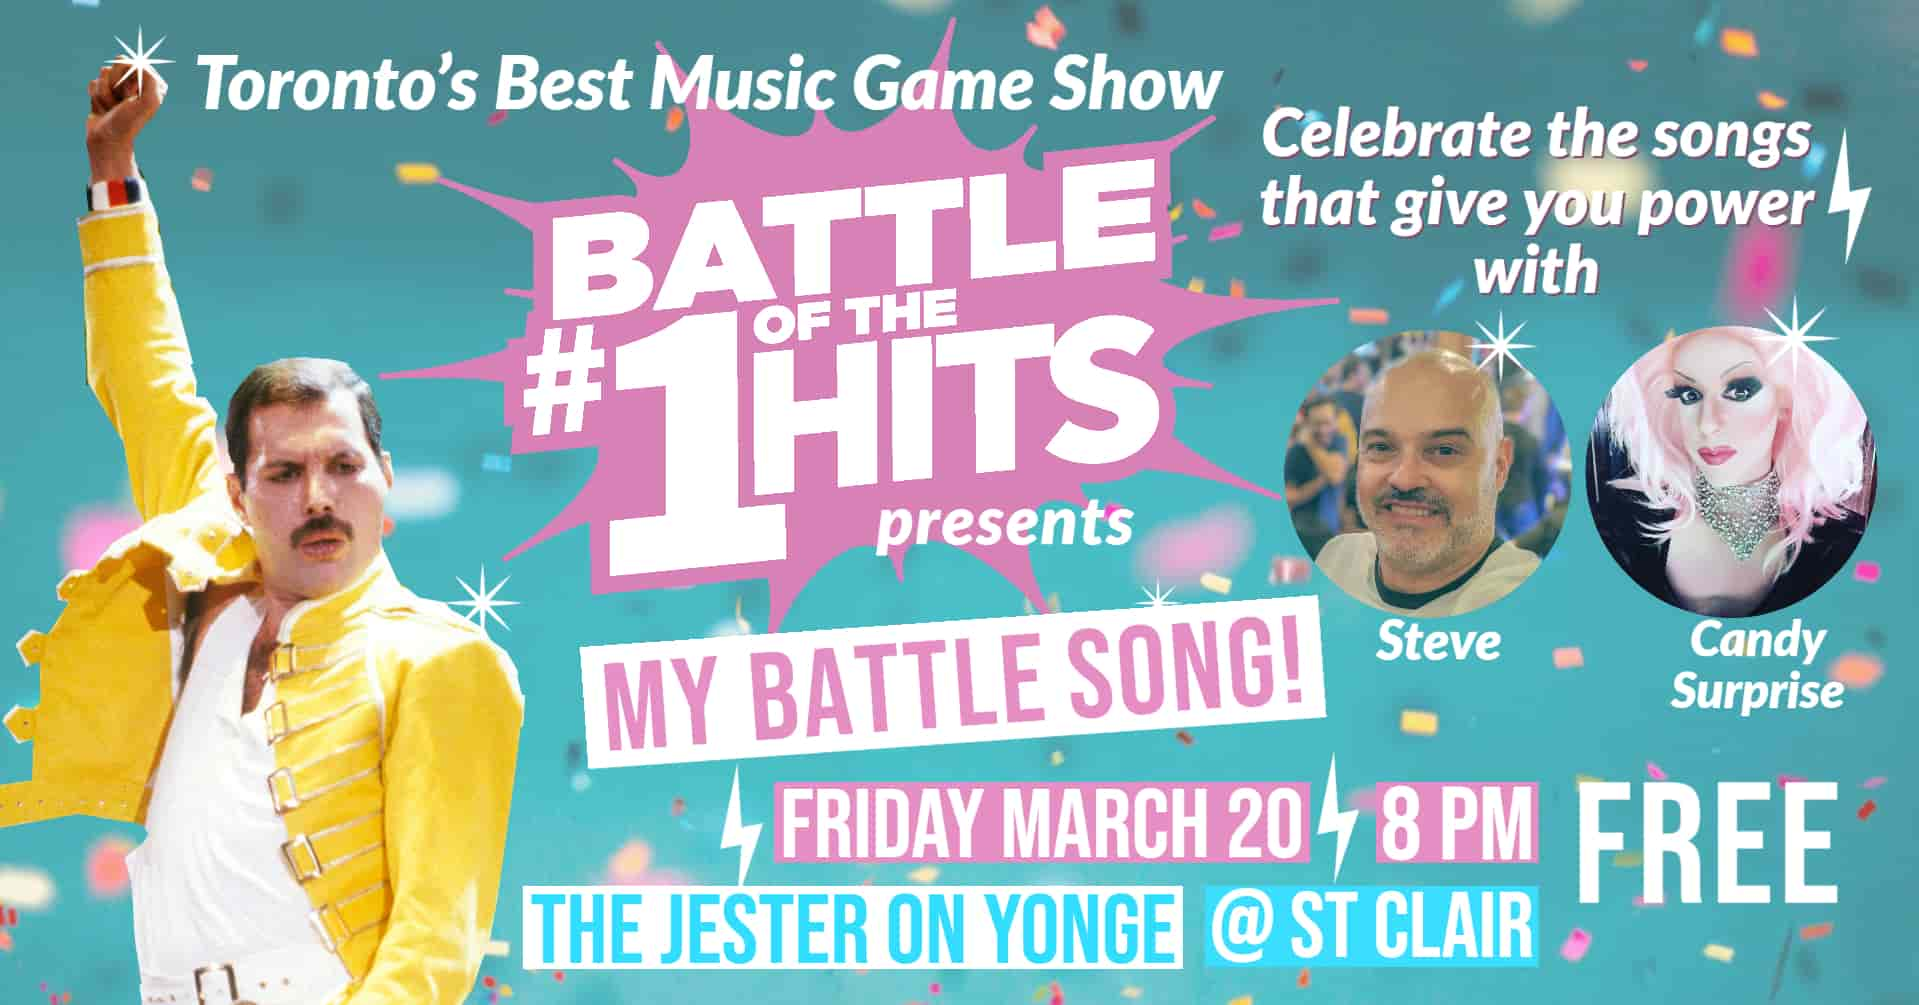 Battle of the #1 Hits Live at The Jester on Yonge